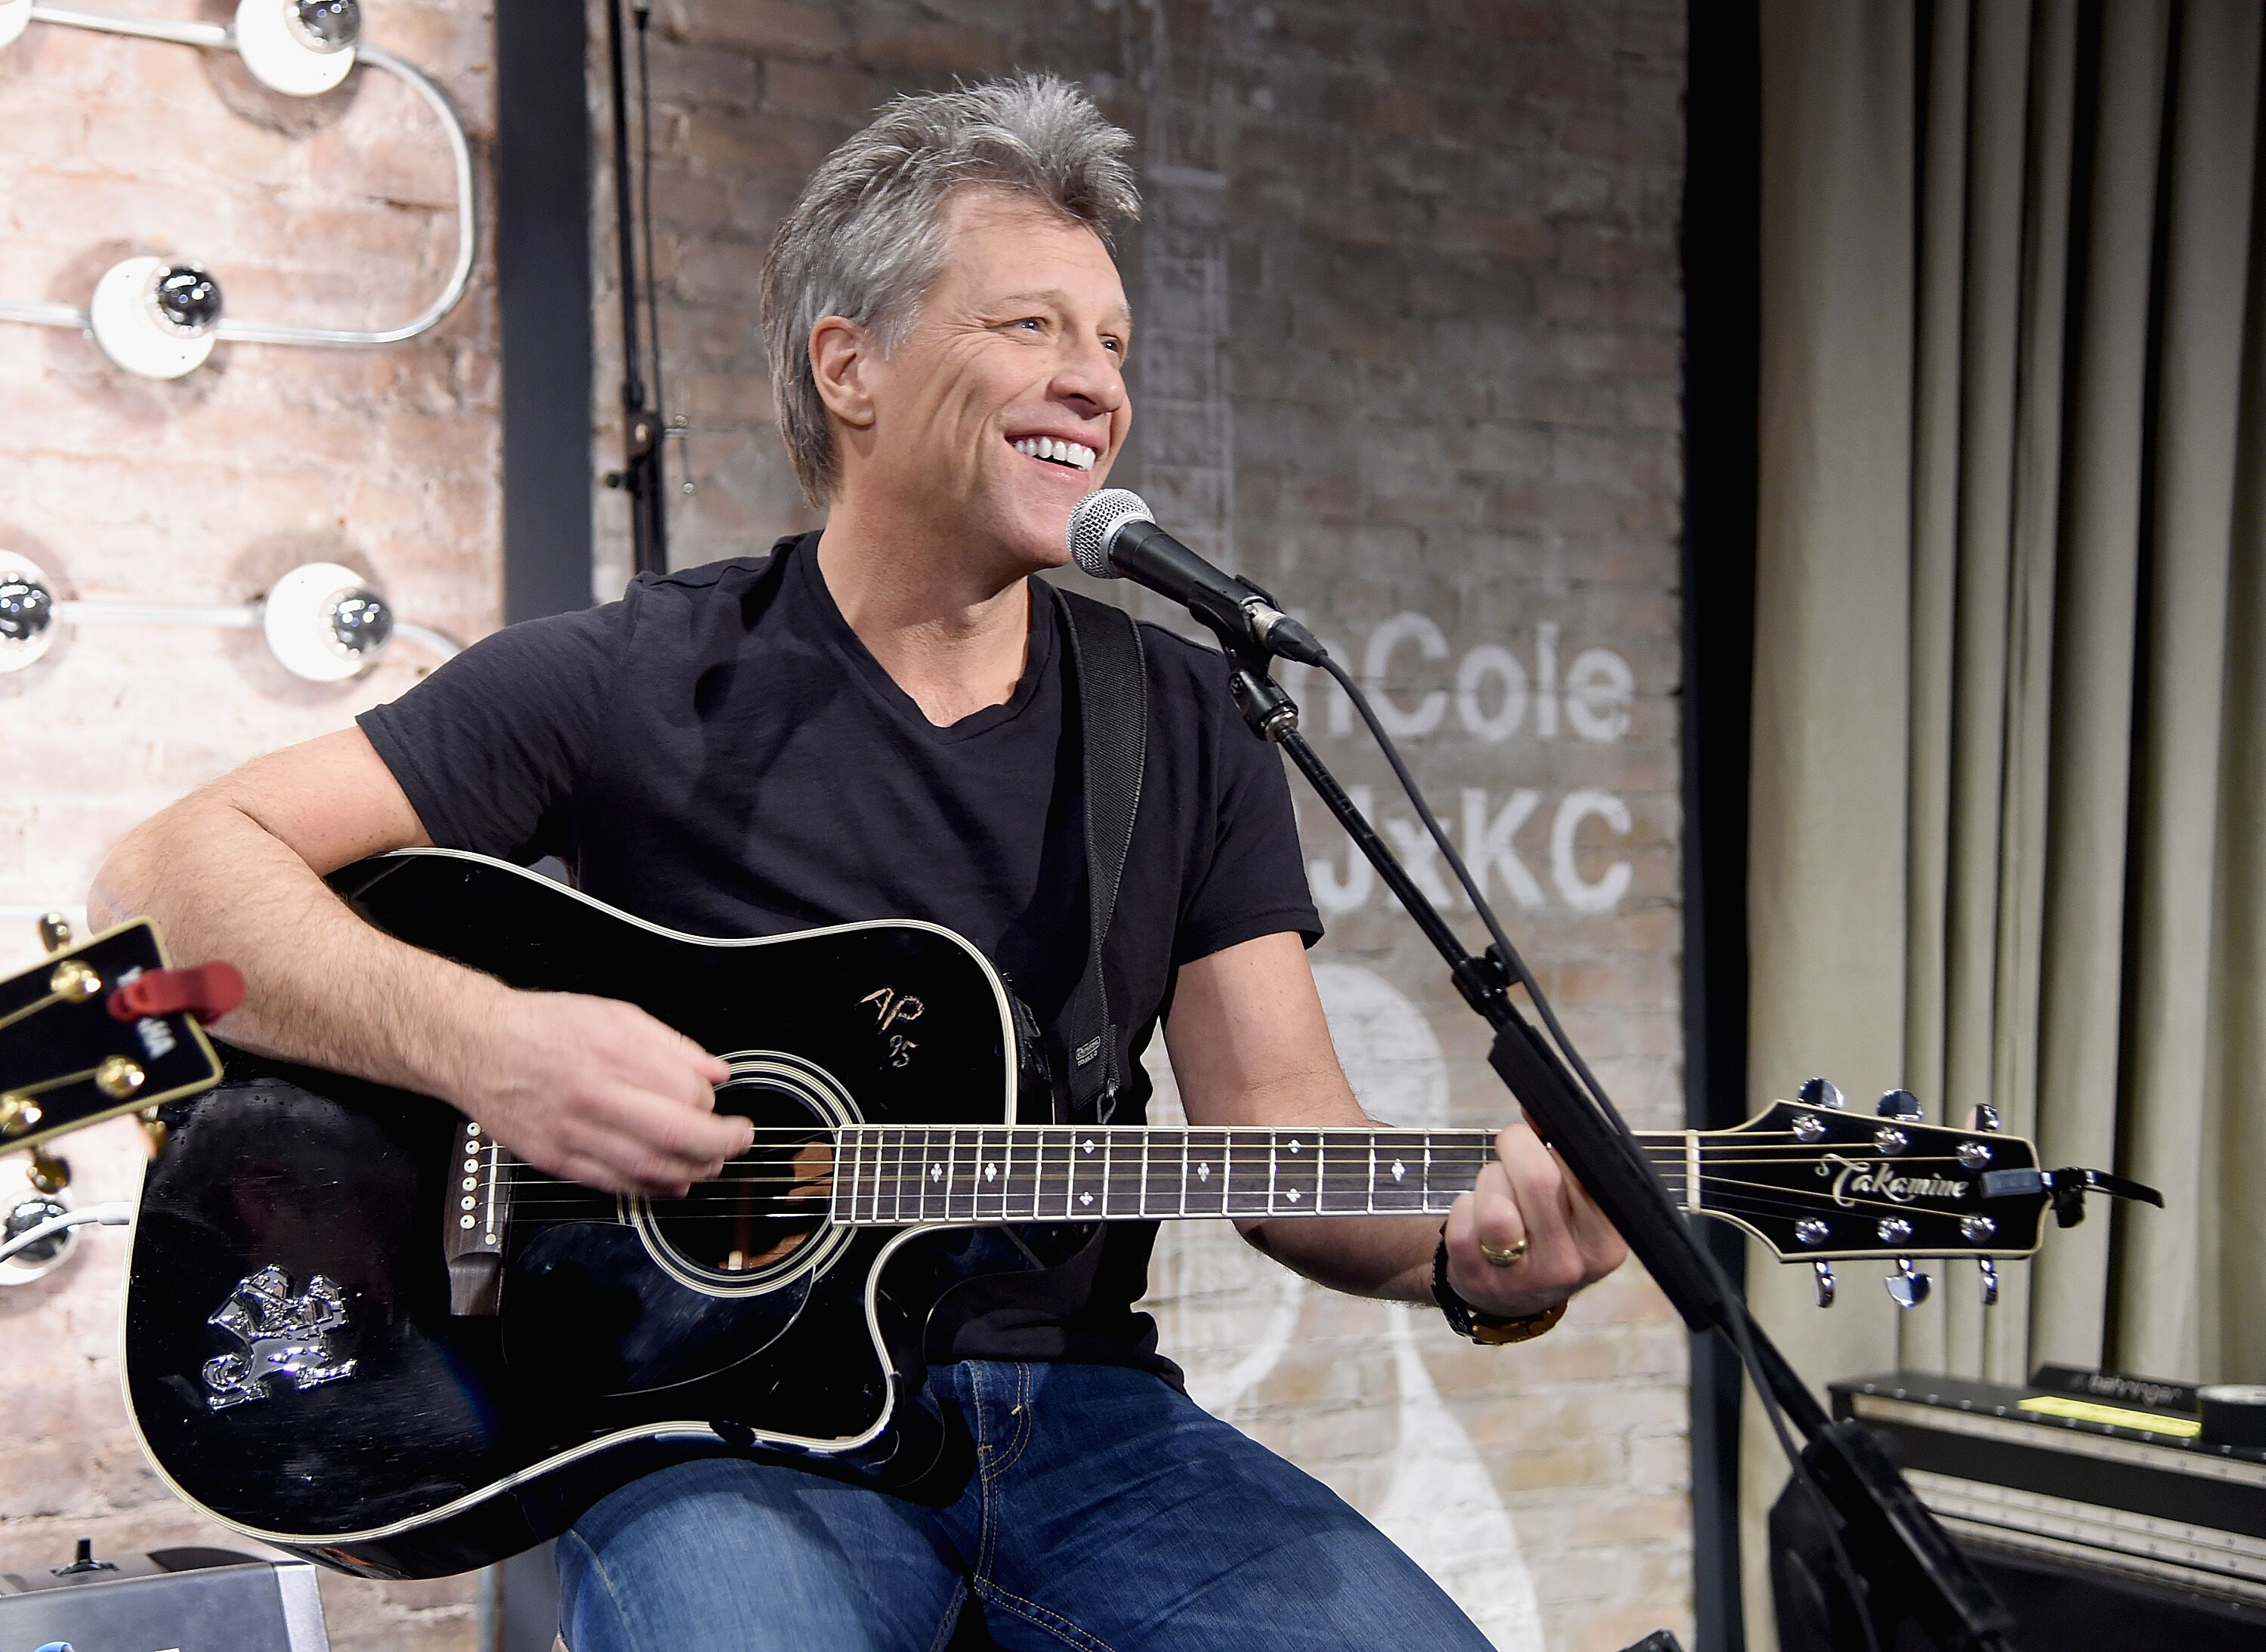 Jon Bon Jovi performs at the Jon Bon Jovi & Kenneth Cole Curated Acoustic Concert - Mercedes-Benz Fashion Week Fall 2015 on February 12, 2015 in New York City | Photo: Getty Images